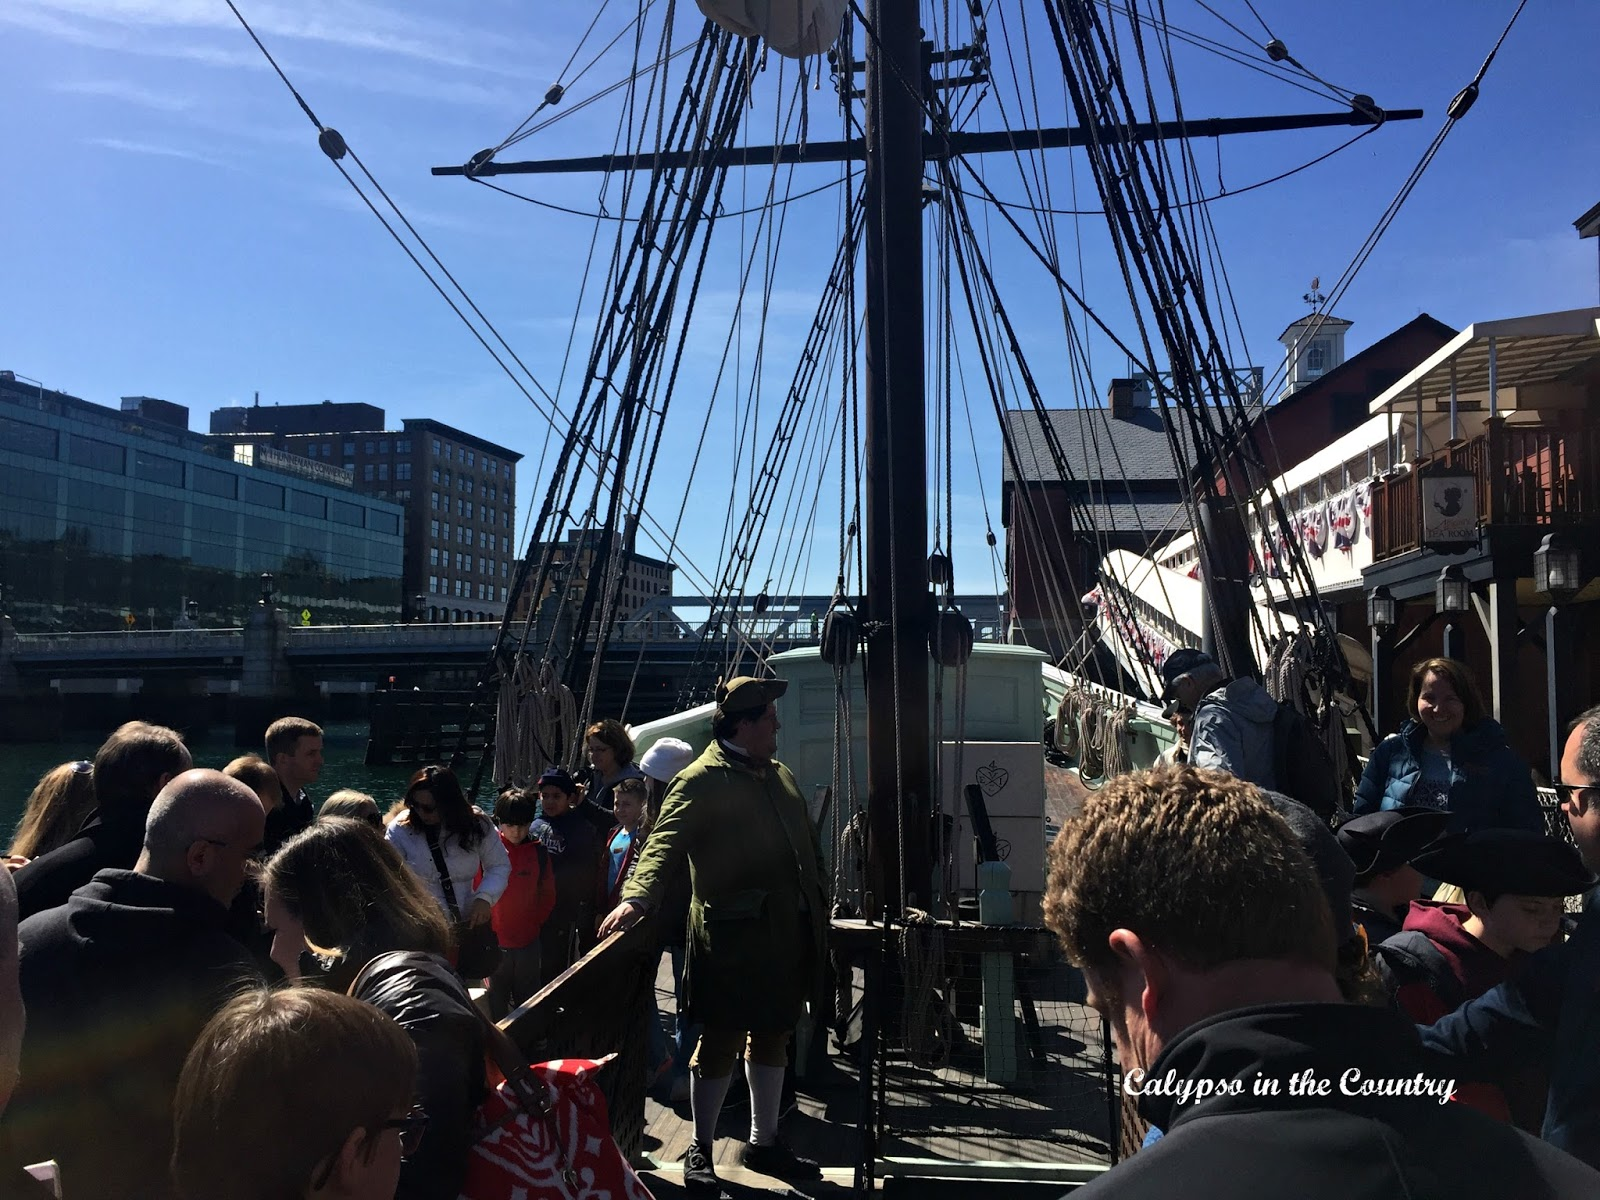 Boston Tea Party Ship - the kids loved throwing the tea overboard!